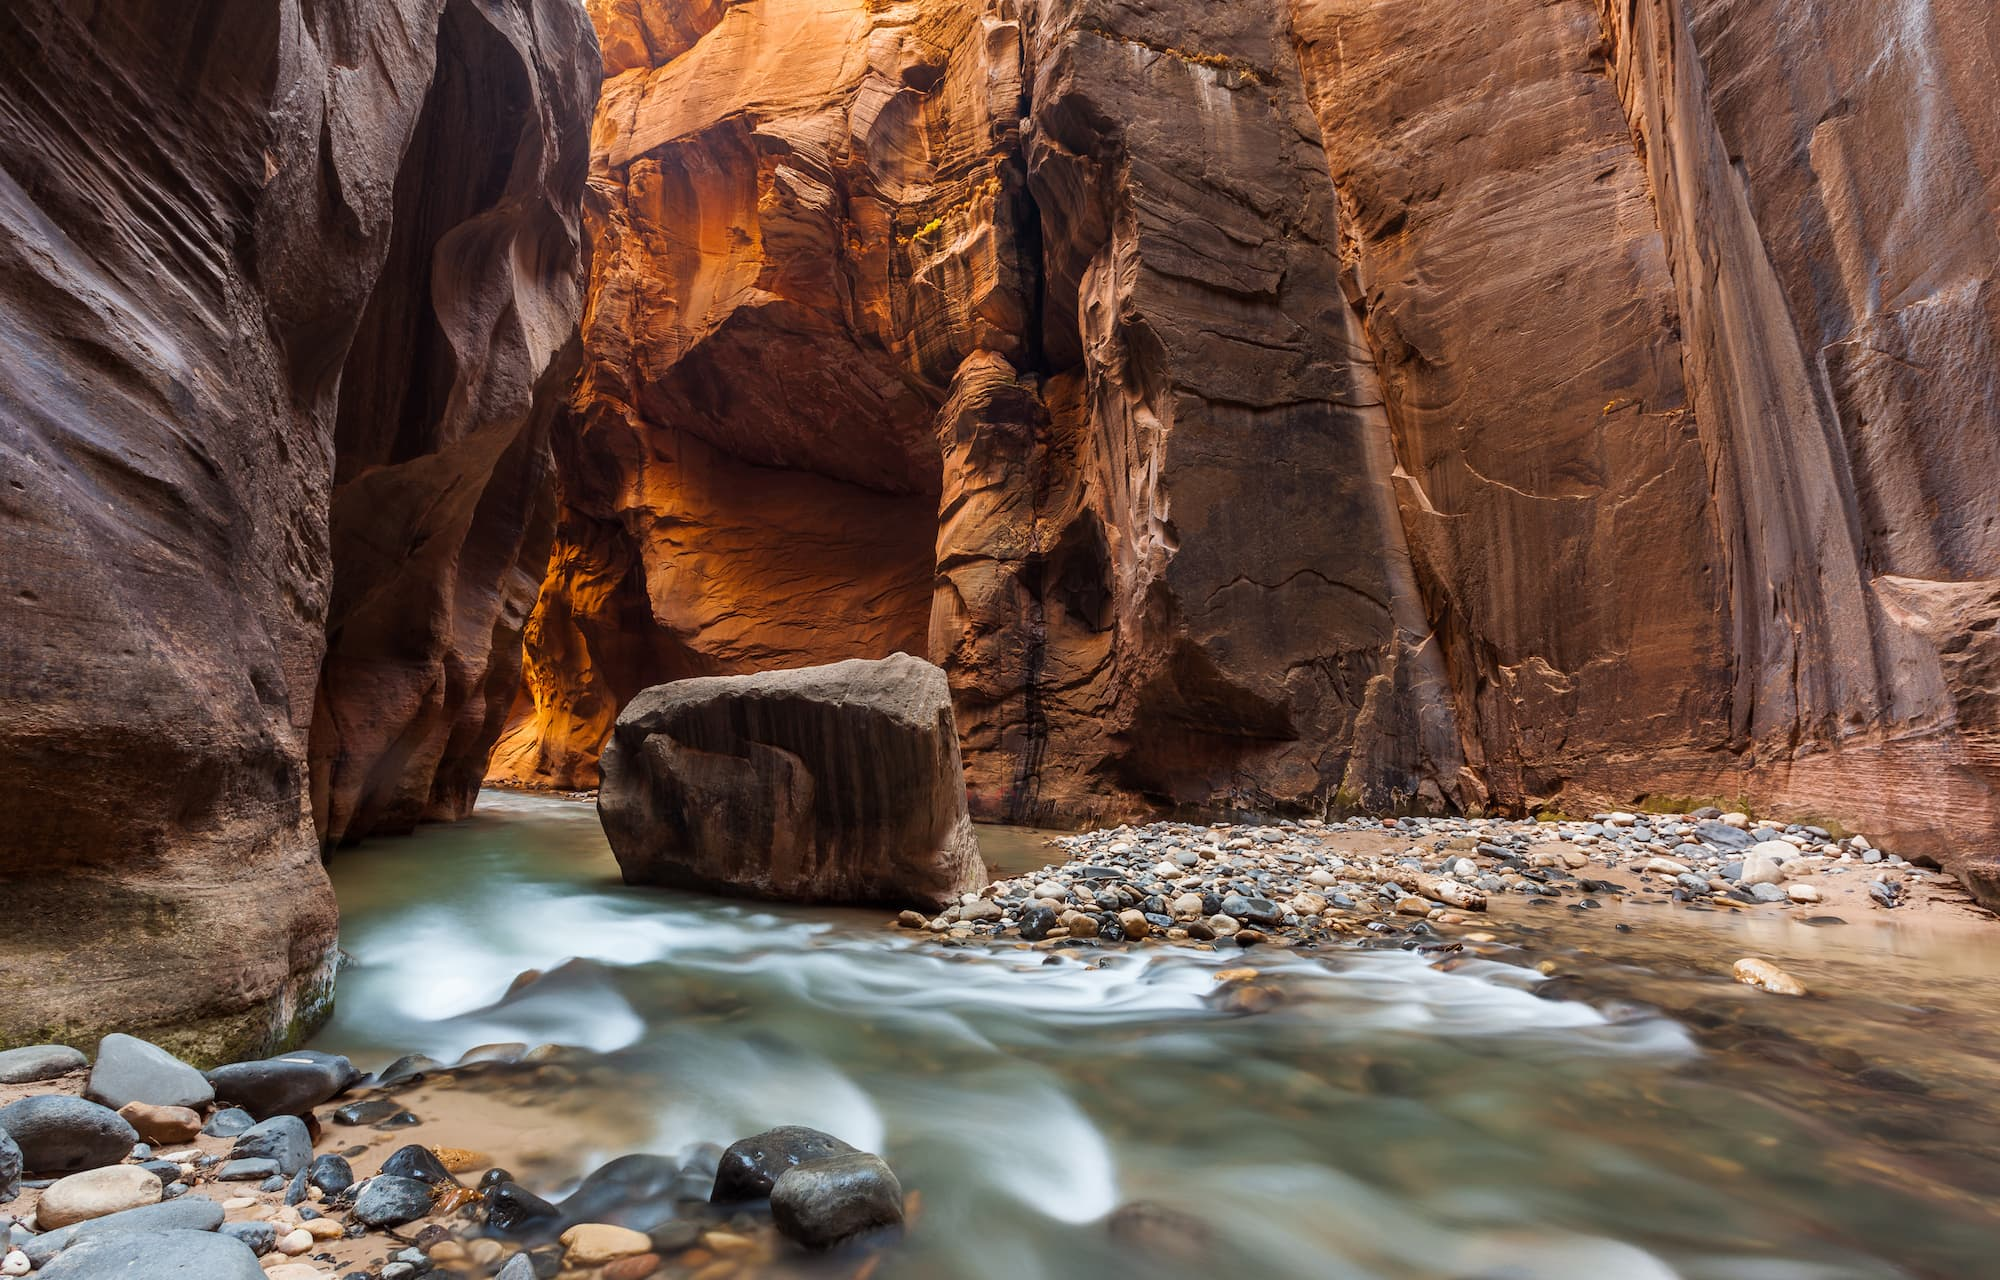 Hiking the Zion Narrows: A Complete Guide